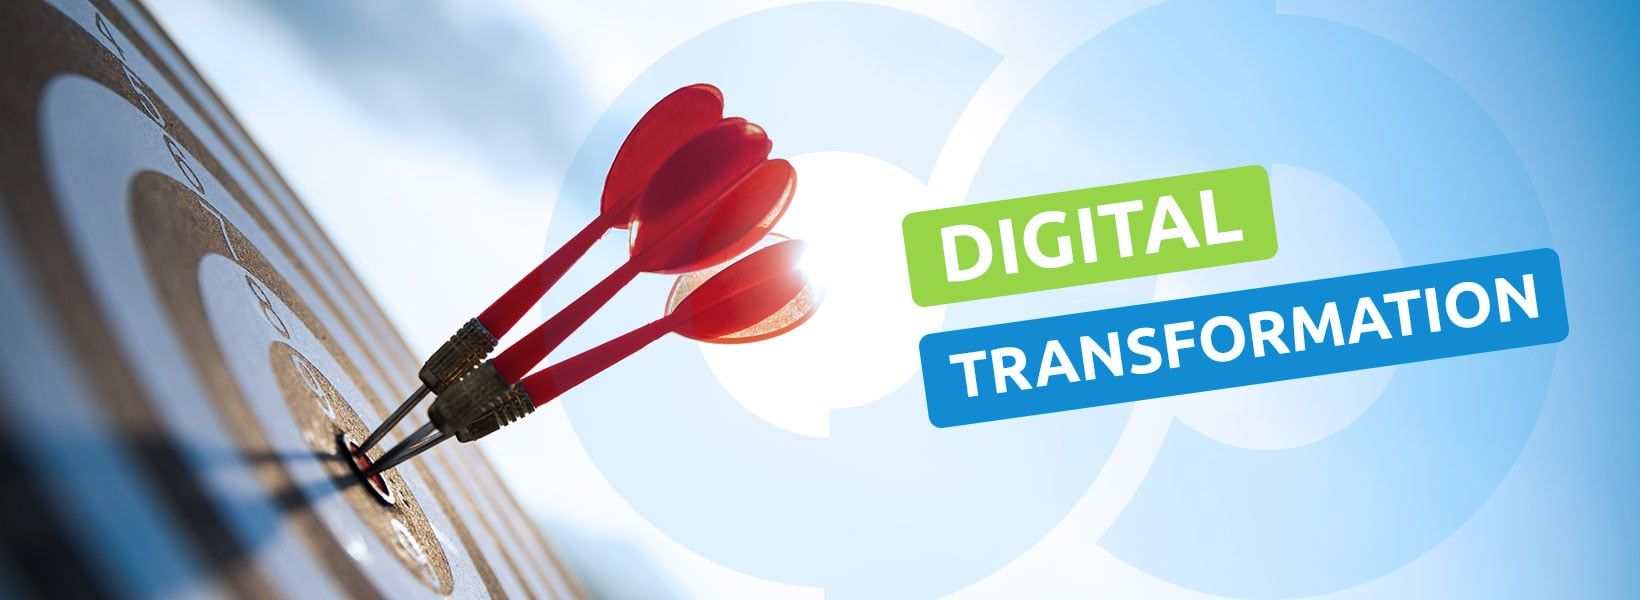 Digital Transformation in Customer Service – 5 Inspirational Success Stories (Part 3 of 4)